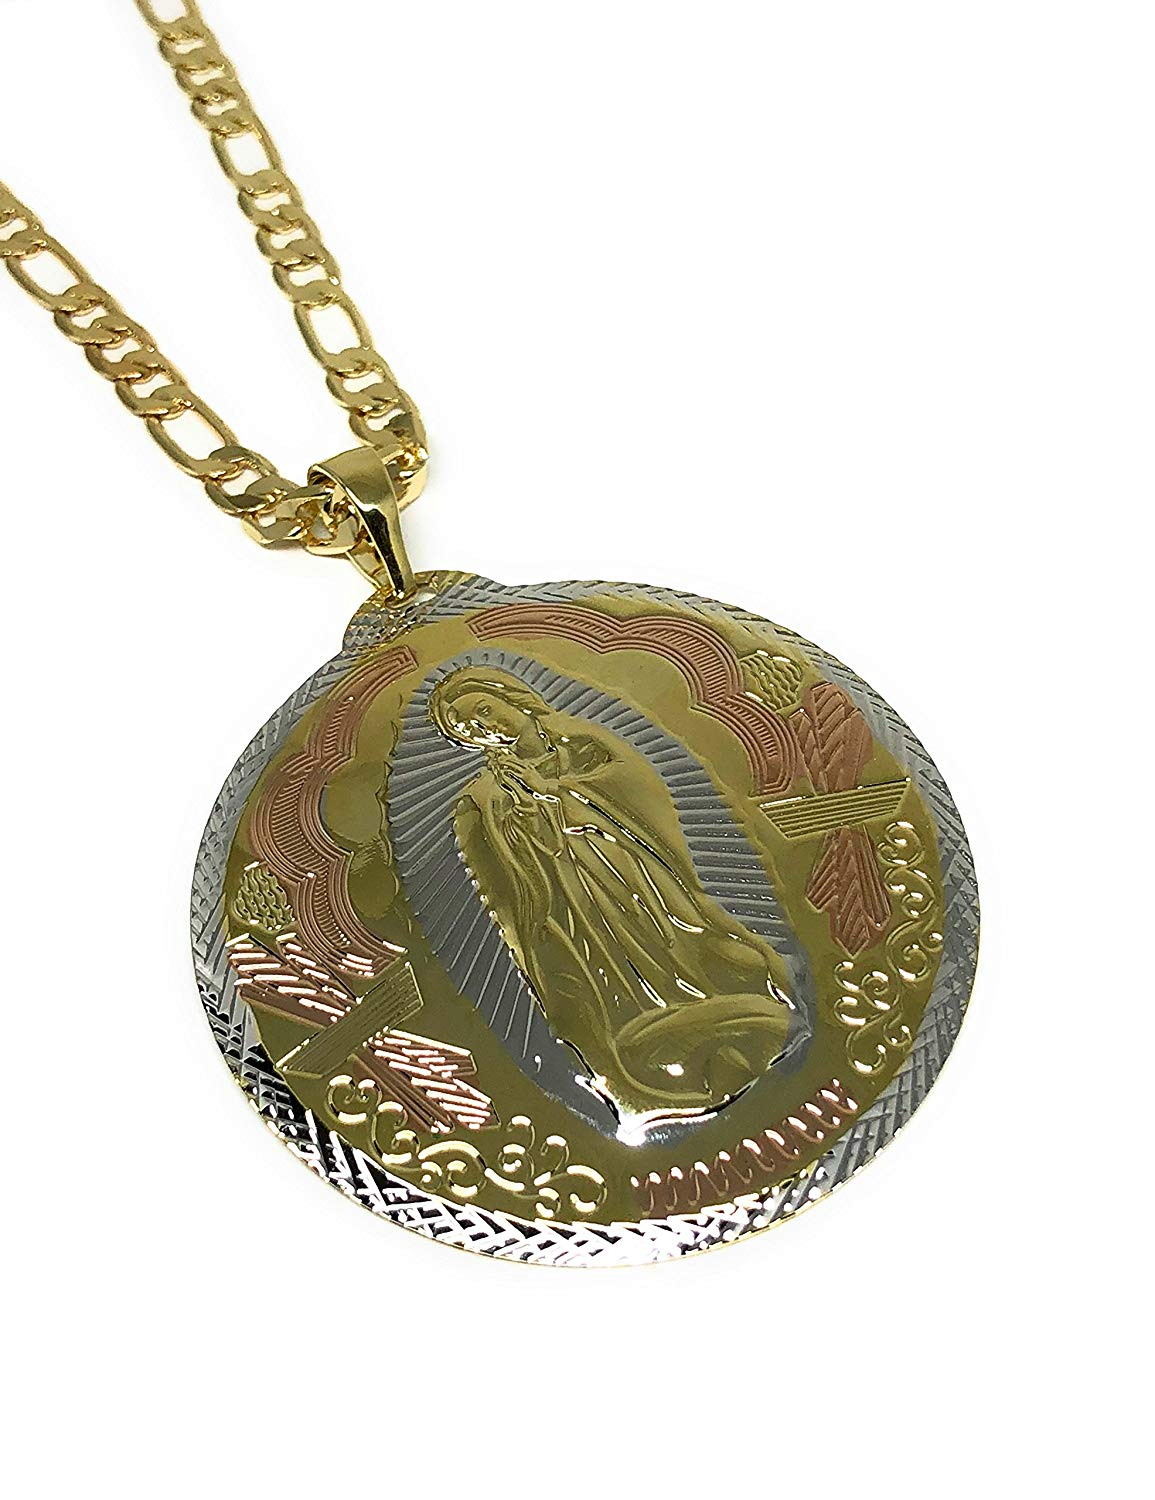 "Gold Plated Big XL Tri-Color Virgin Mary Pendant / Virgen Guadalupe Tres Colores XL Grande Medalla Pendant Necklace Chain 26"" - Fran & Co. Jewelry"